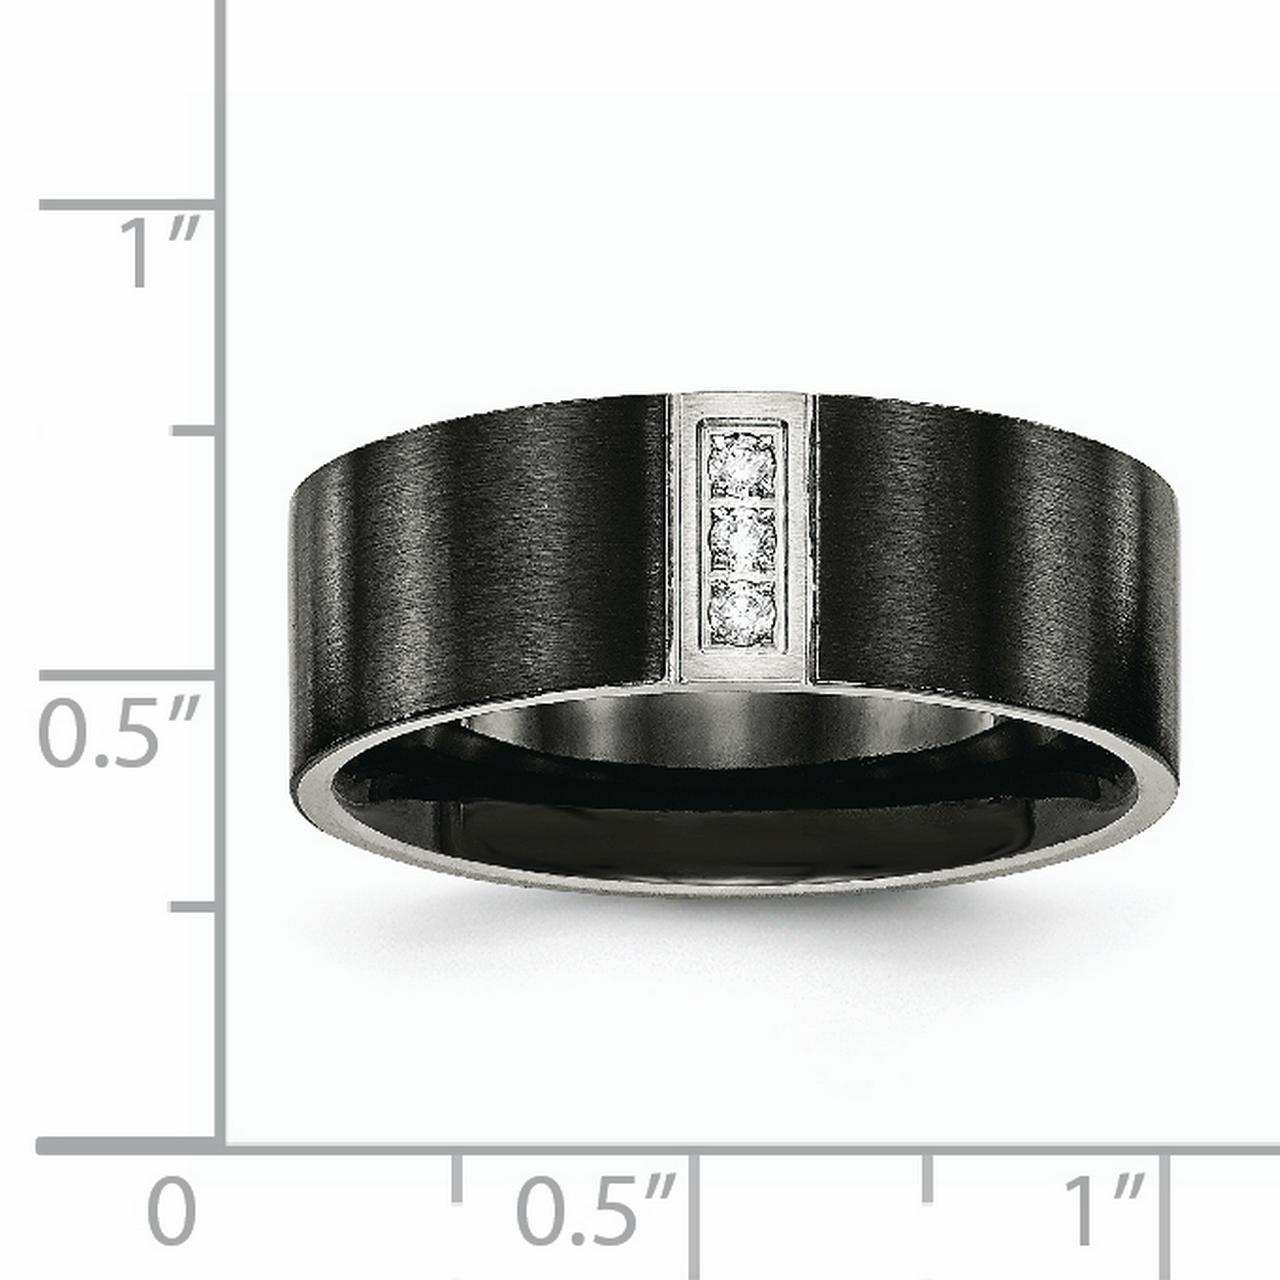 Stainless Steel Brushed Black IP Flat Three CZ Ring 8 Size - image 2 of 7